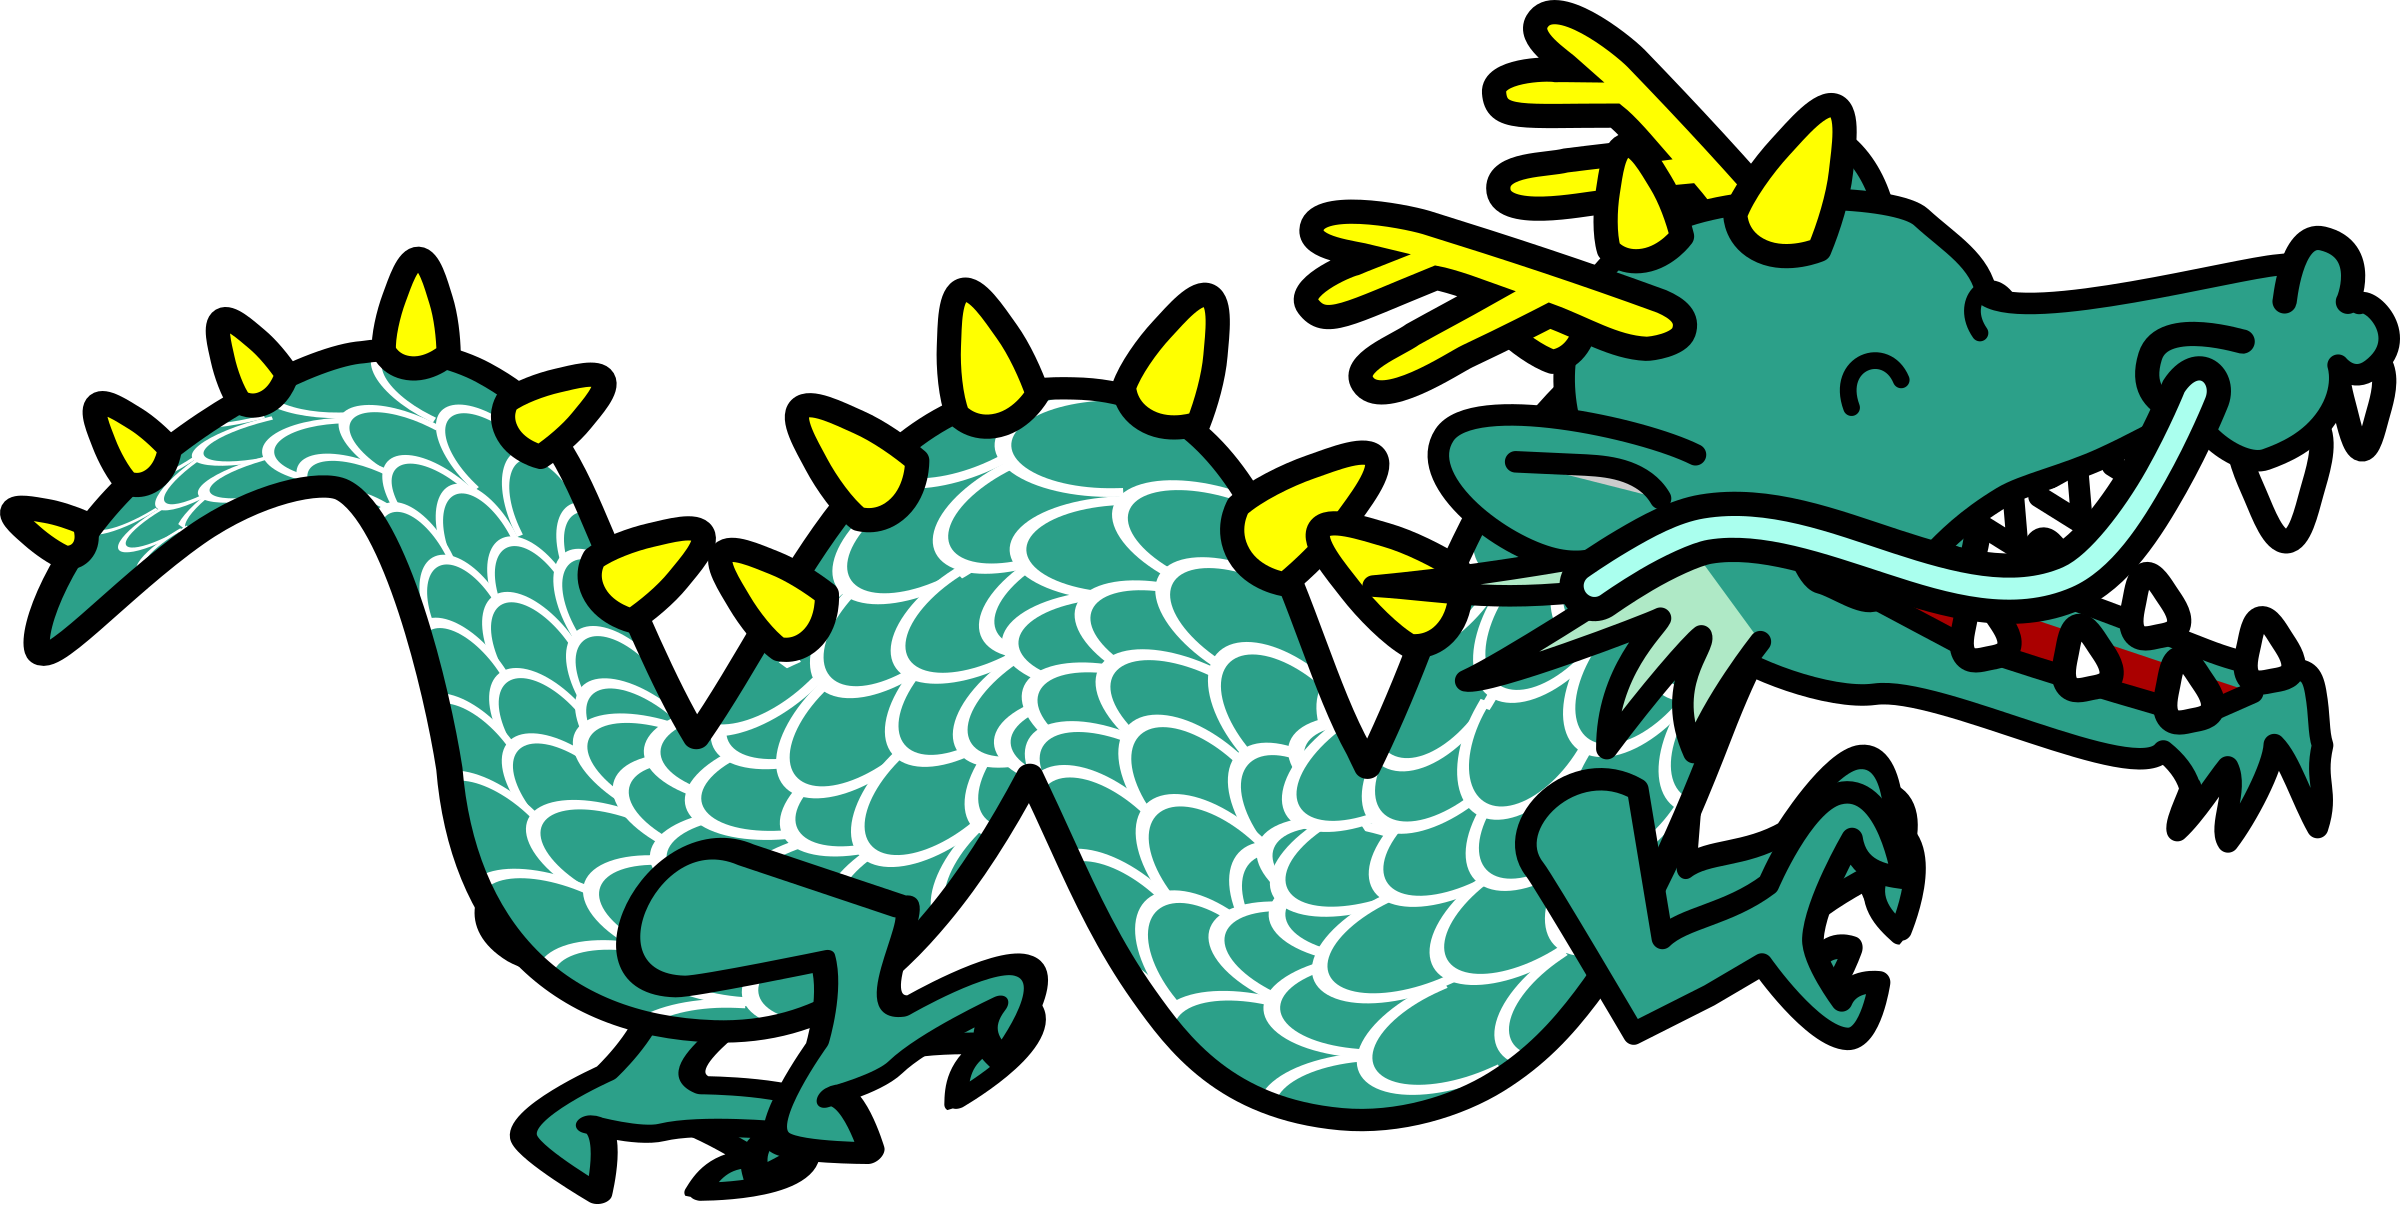 banner transparent Black and white excellent. Chinese clipart long dragon